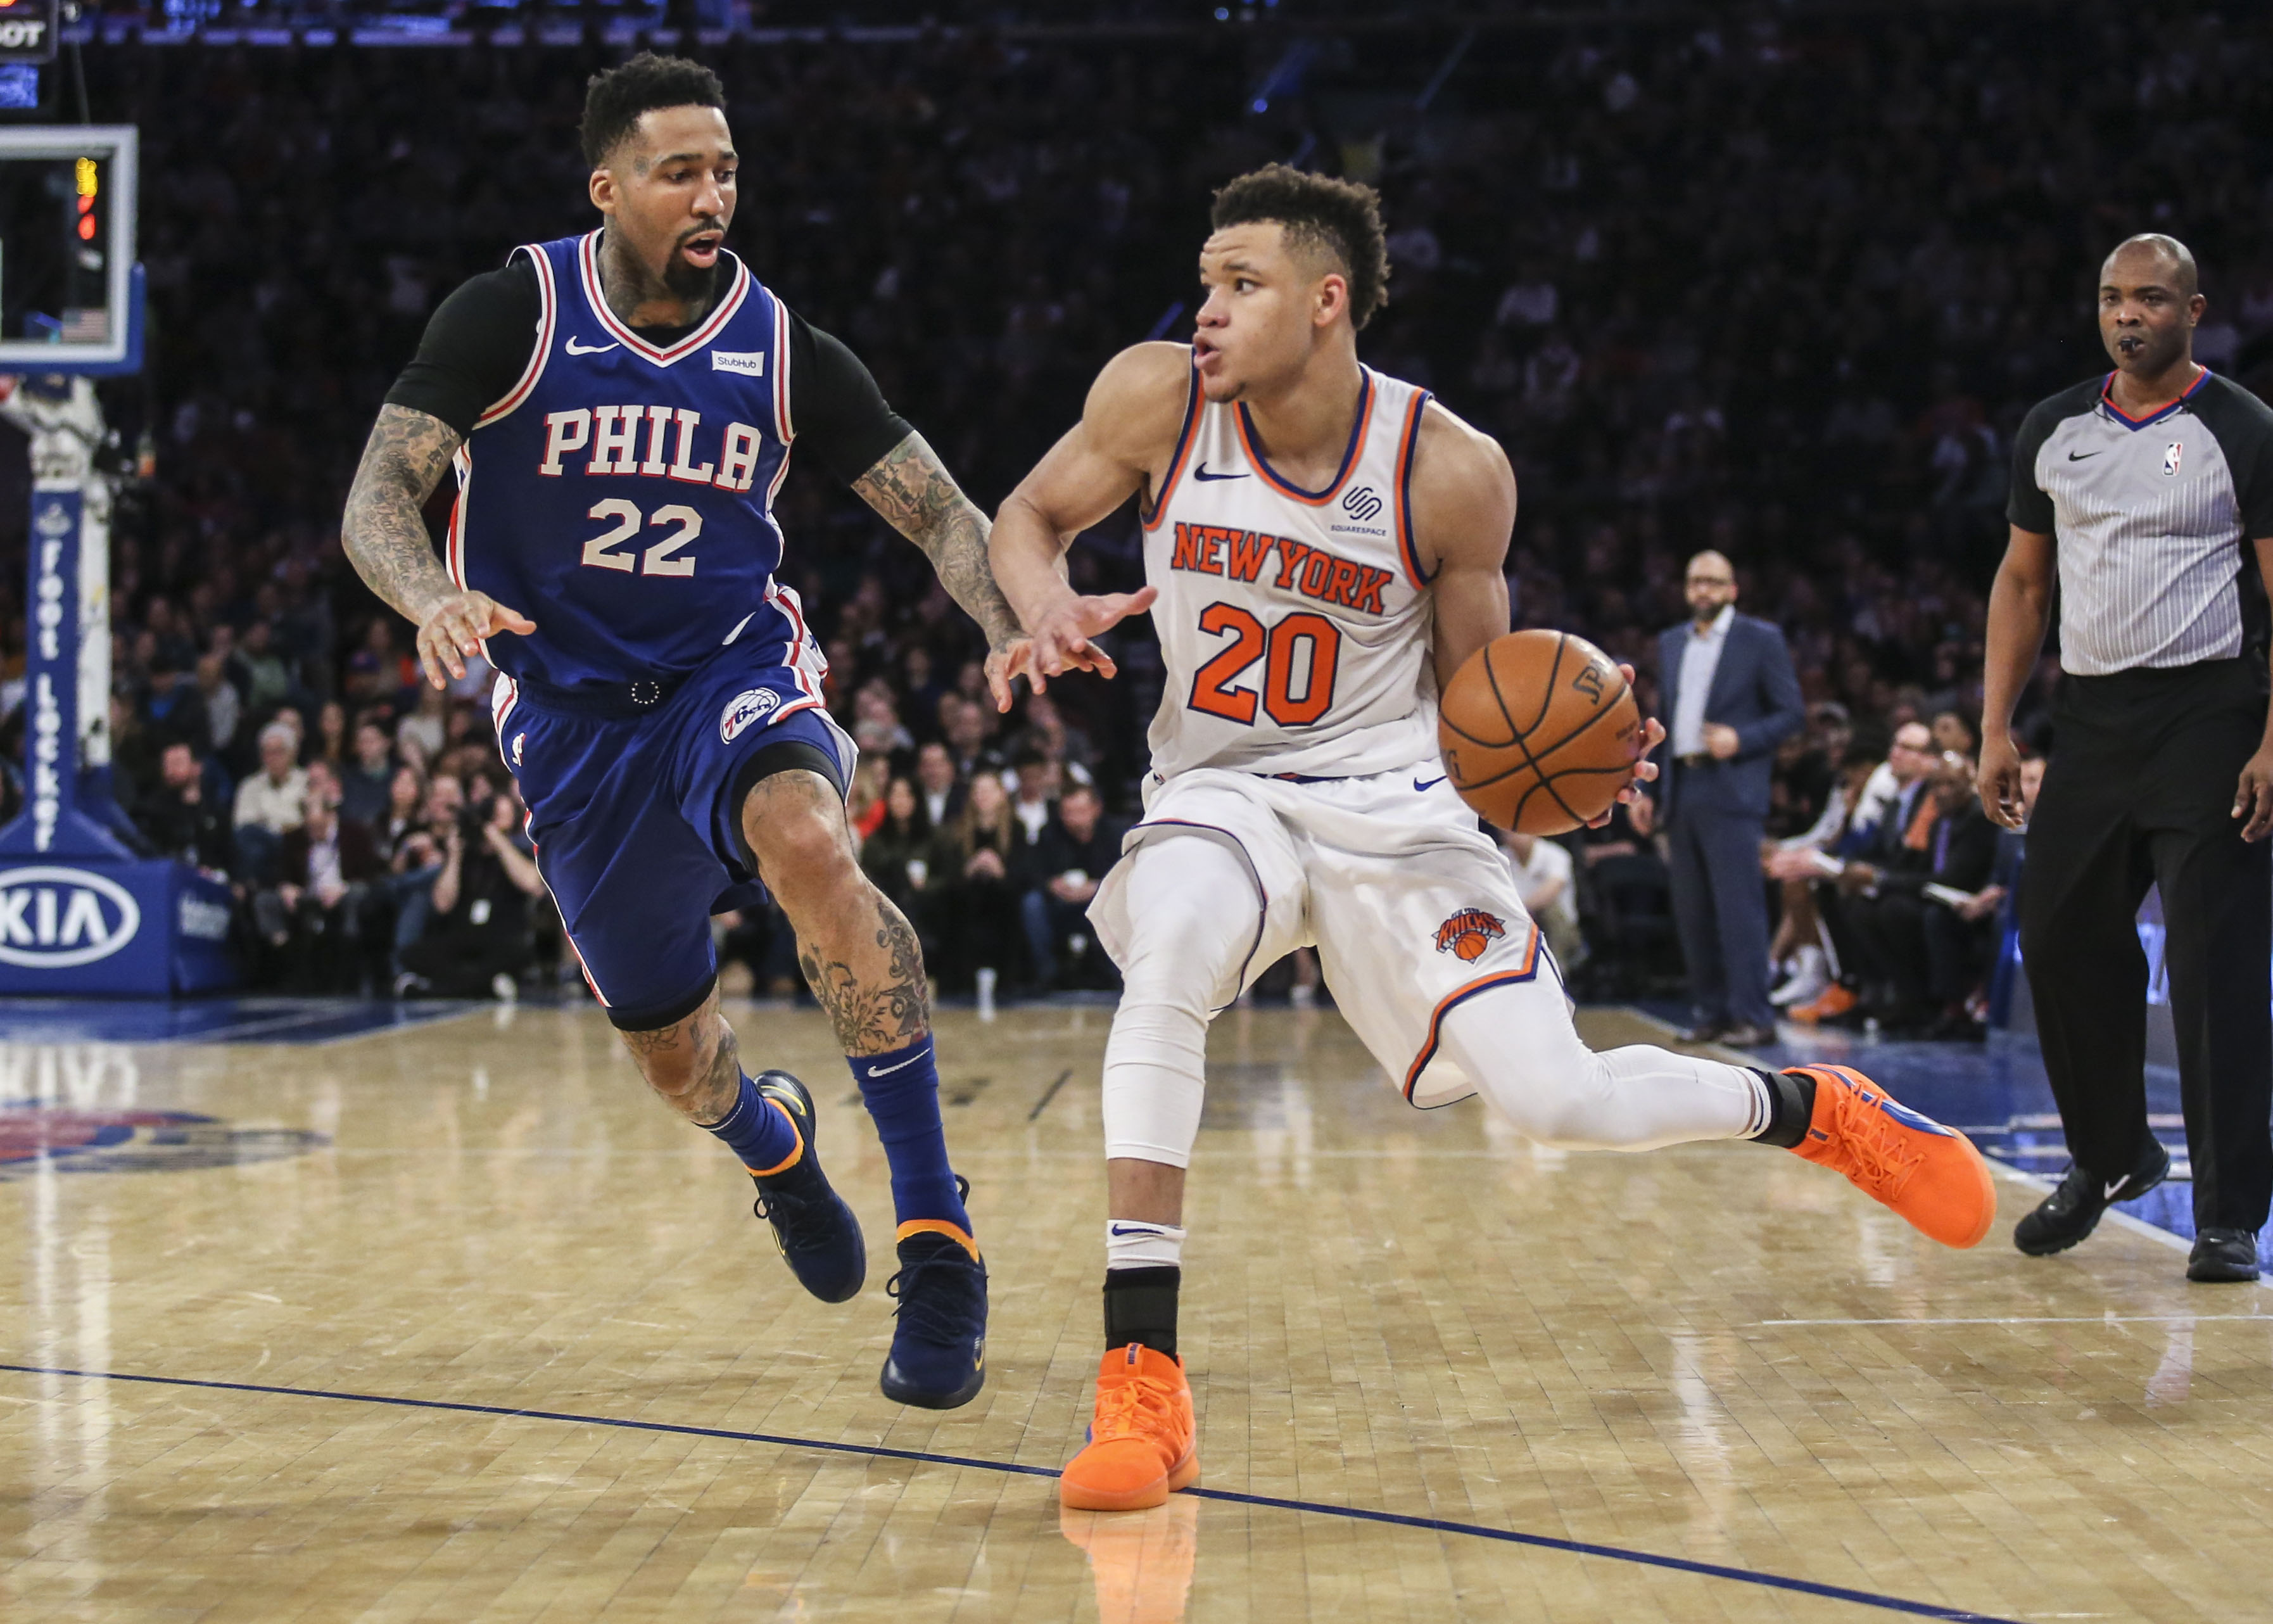 Sixers' Wilson Chandler expected to miss up to two weeks